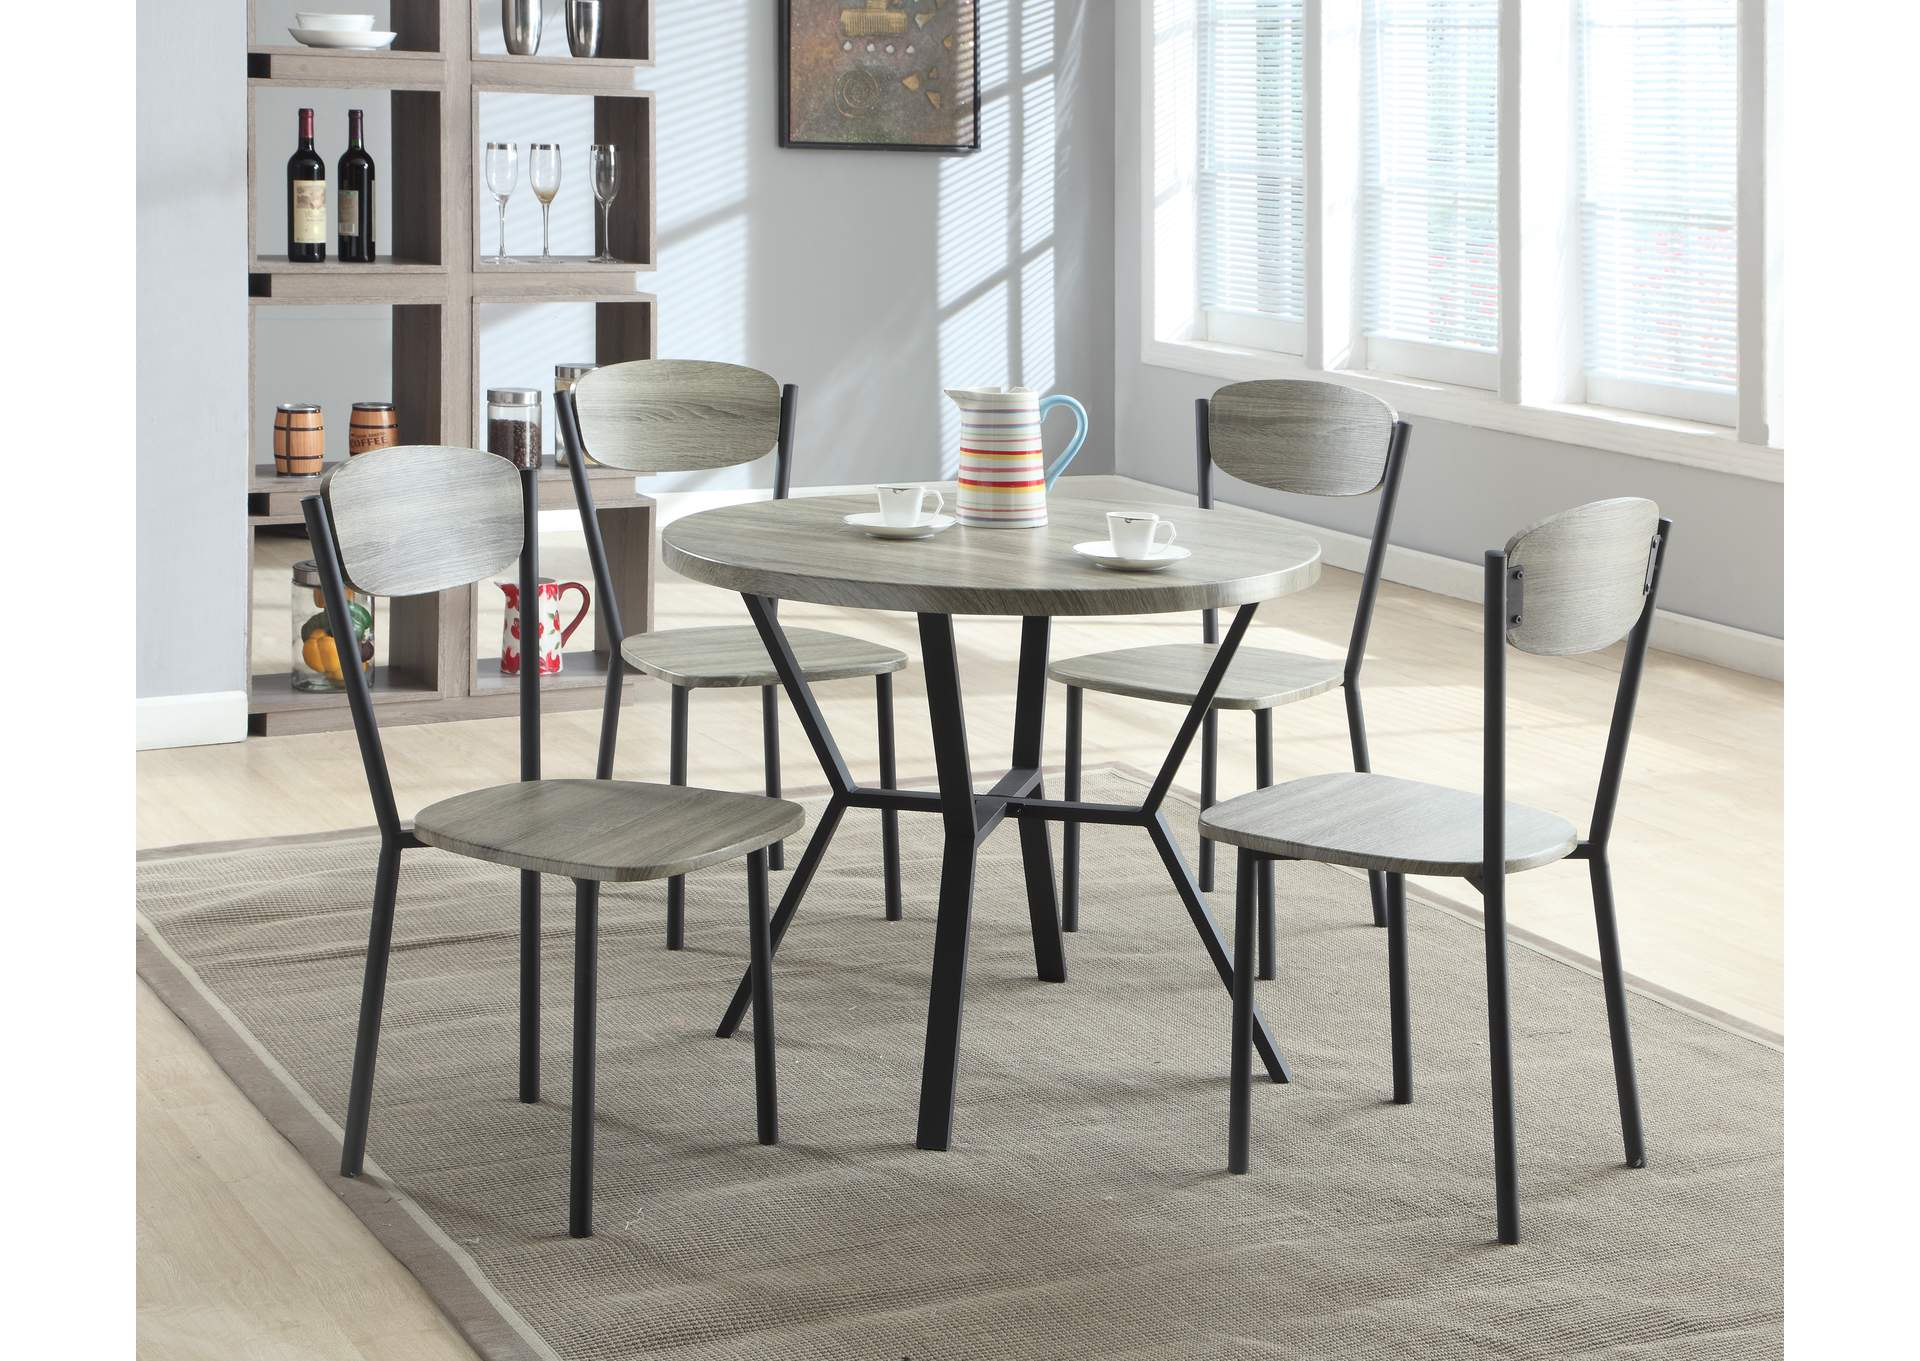 Blake Round Dining Room Table w/ 4 Side Chairs,Crown Mark